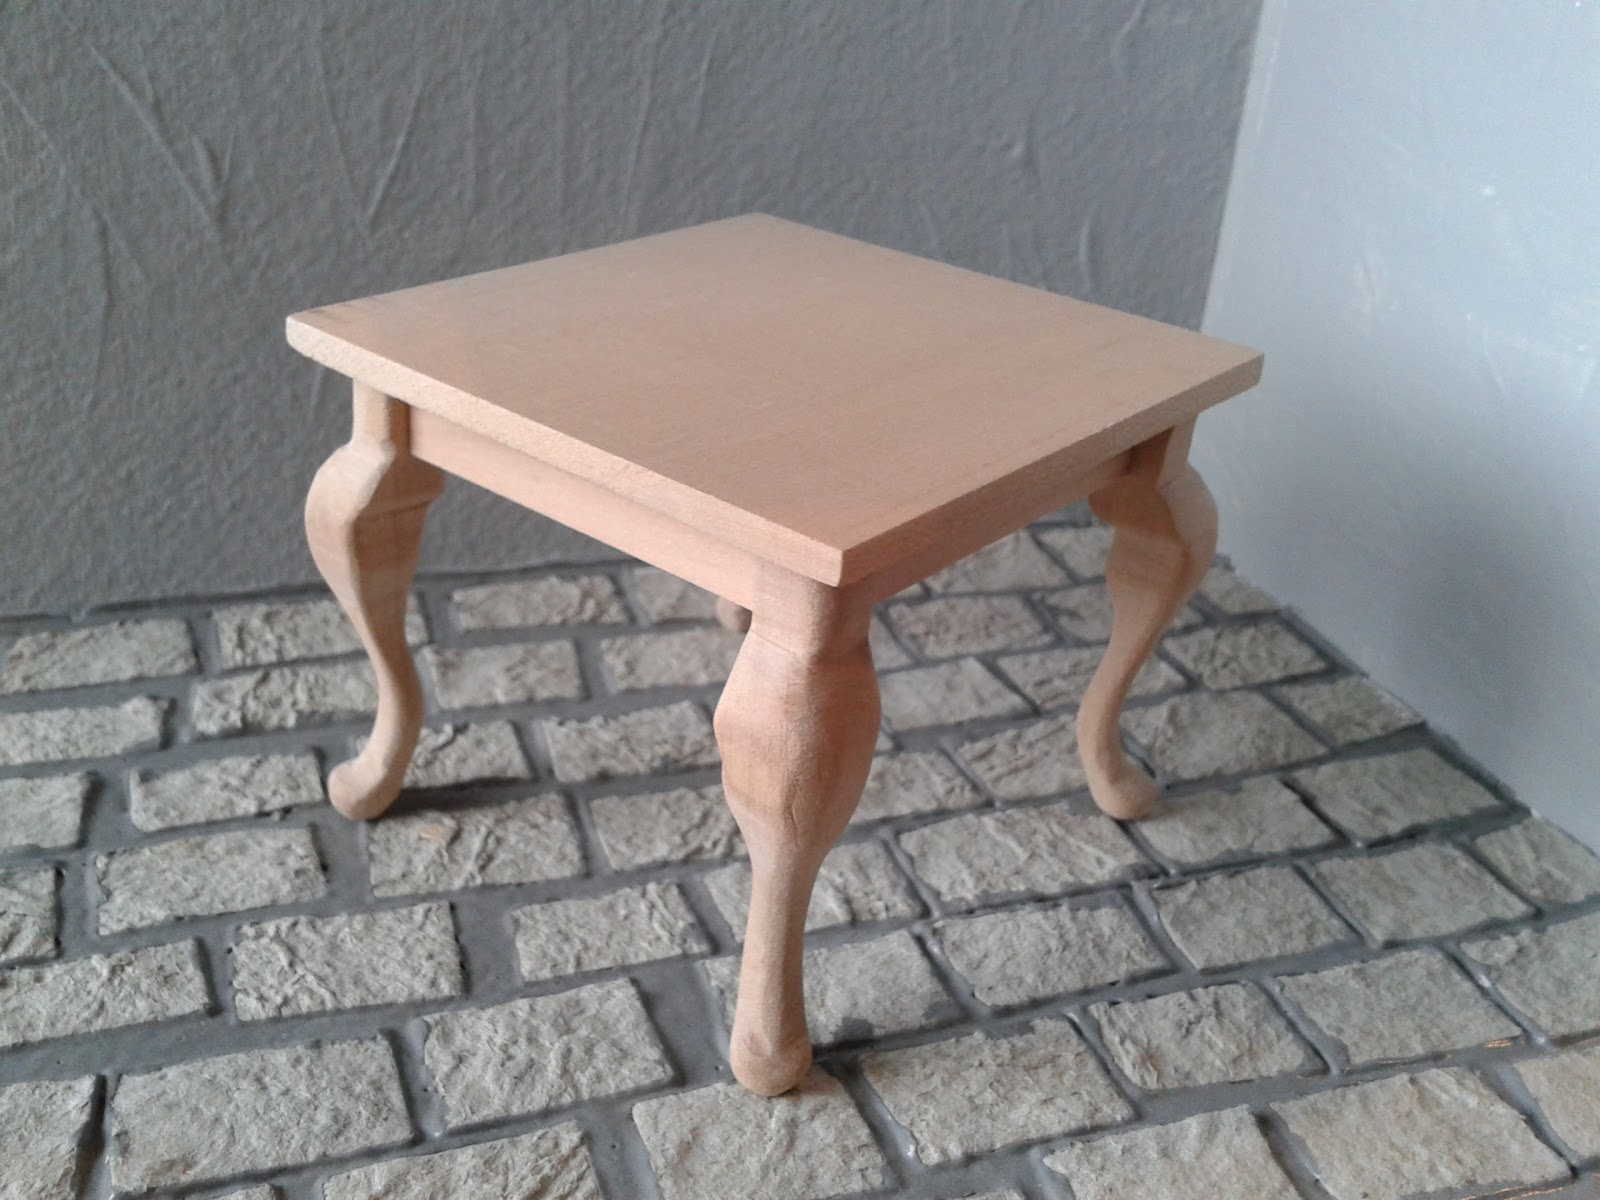 Illyria s Miniatures Table with cabriole legs